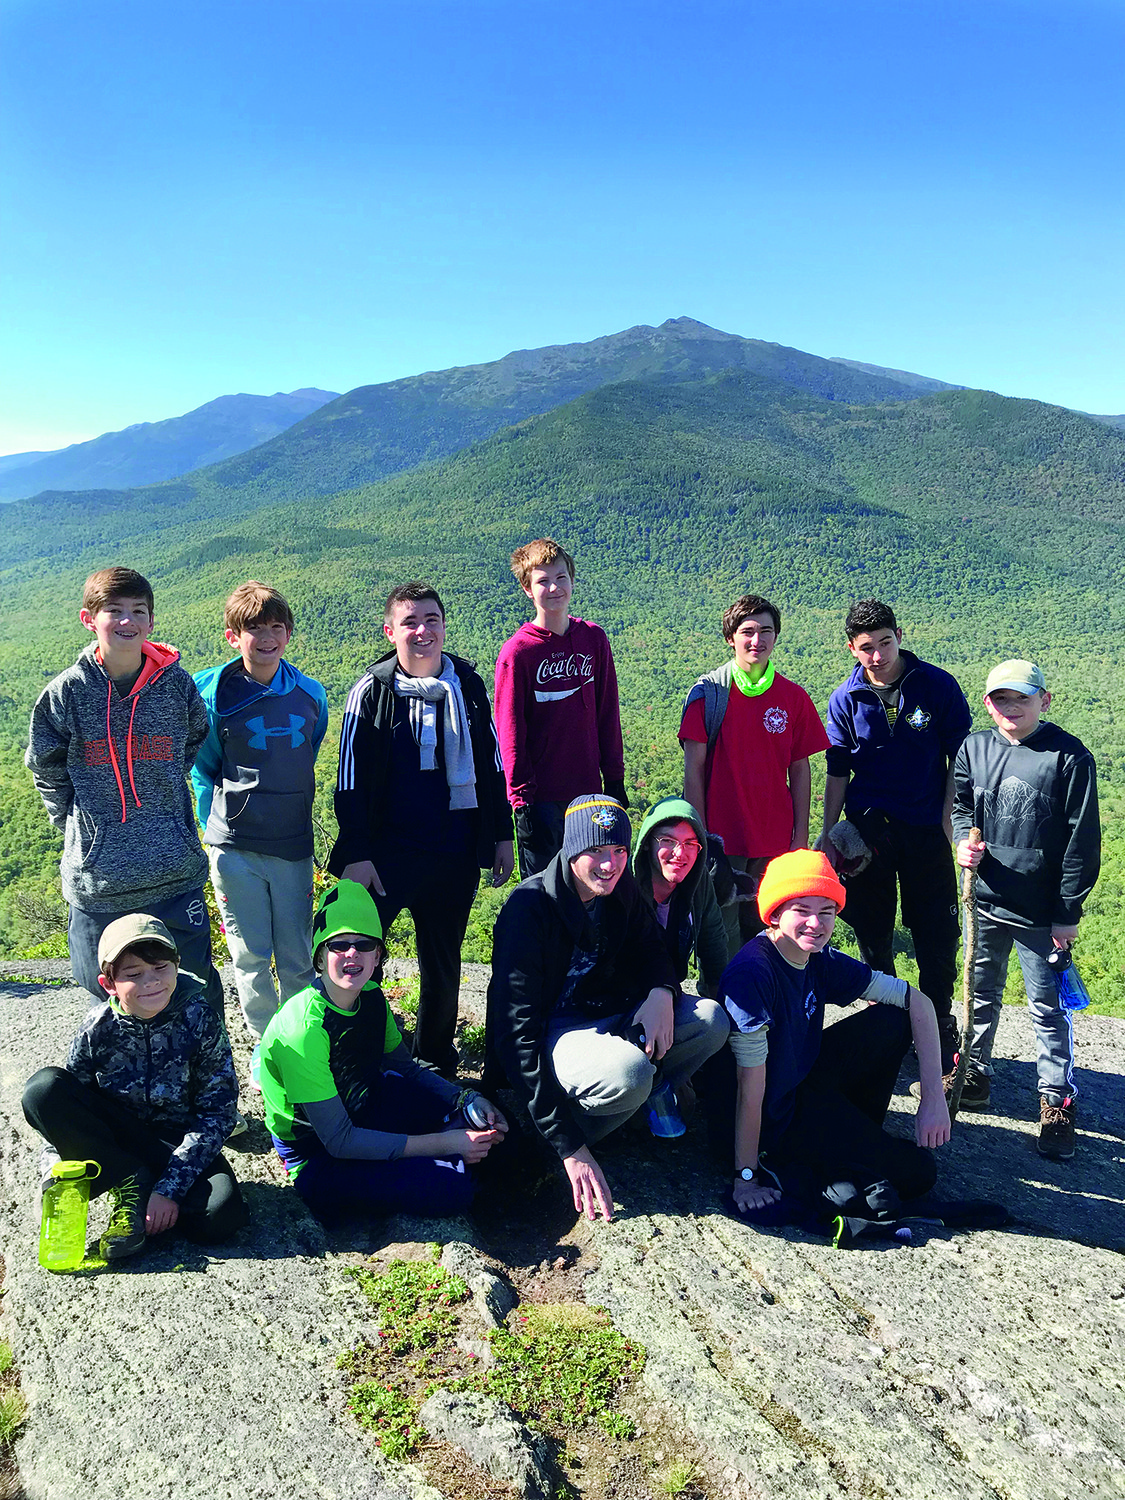 Troop 1 Boy Scouts with Mt Adams in the distance.